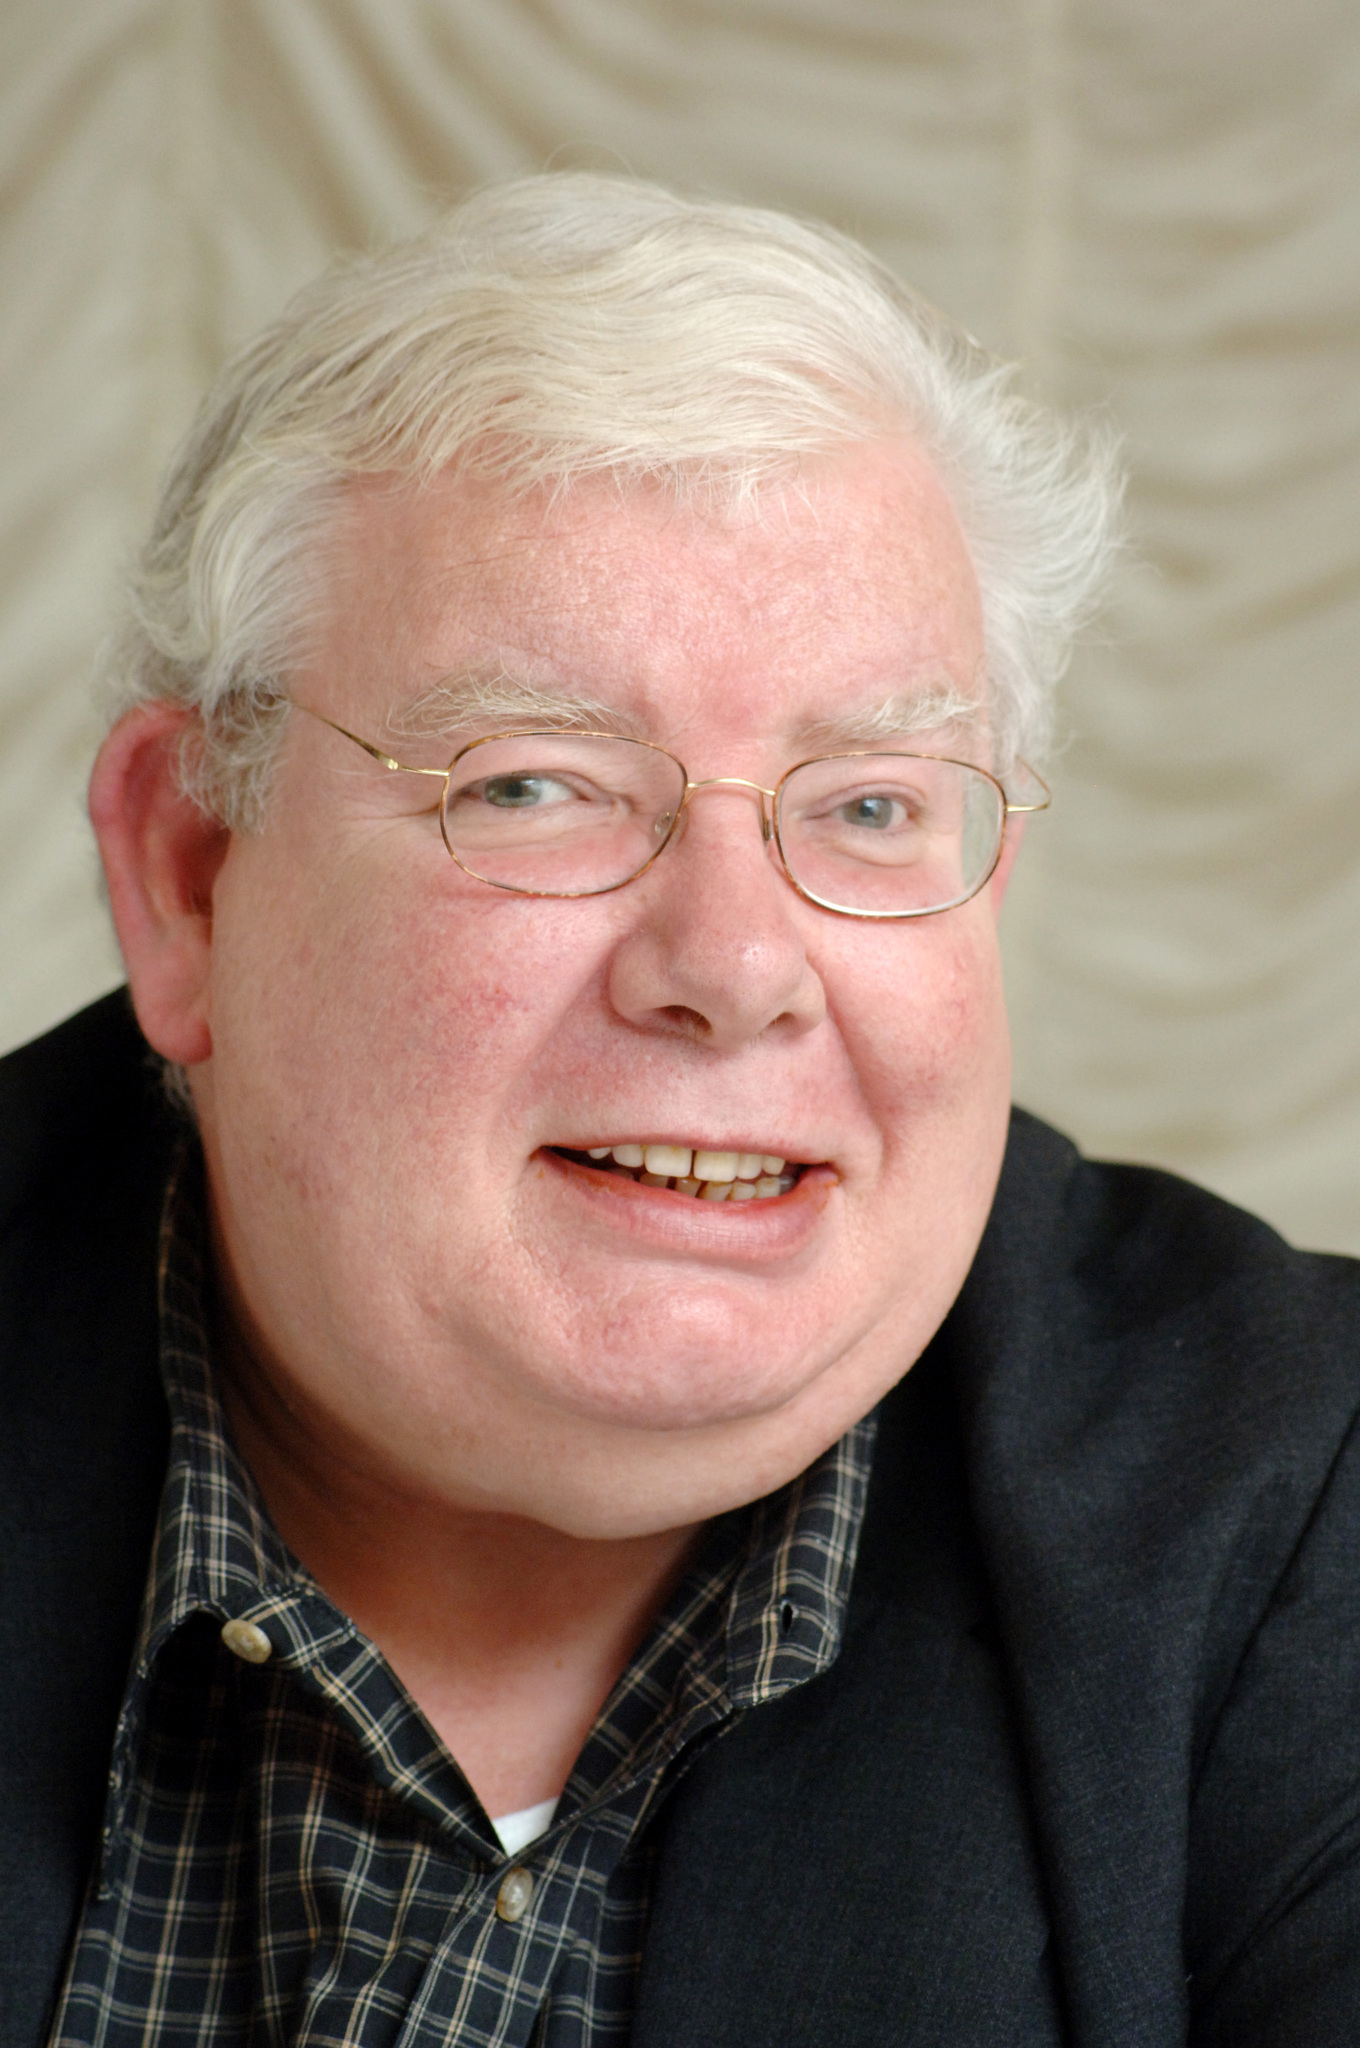 Richard Griffiths - Contact Info, Agent, Manager | IMDbProIan Mcneice Harry Potter